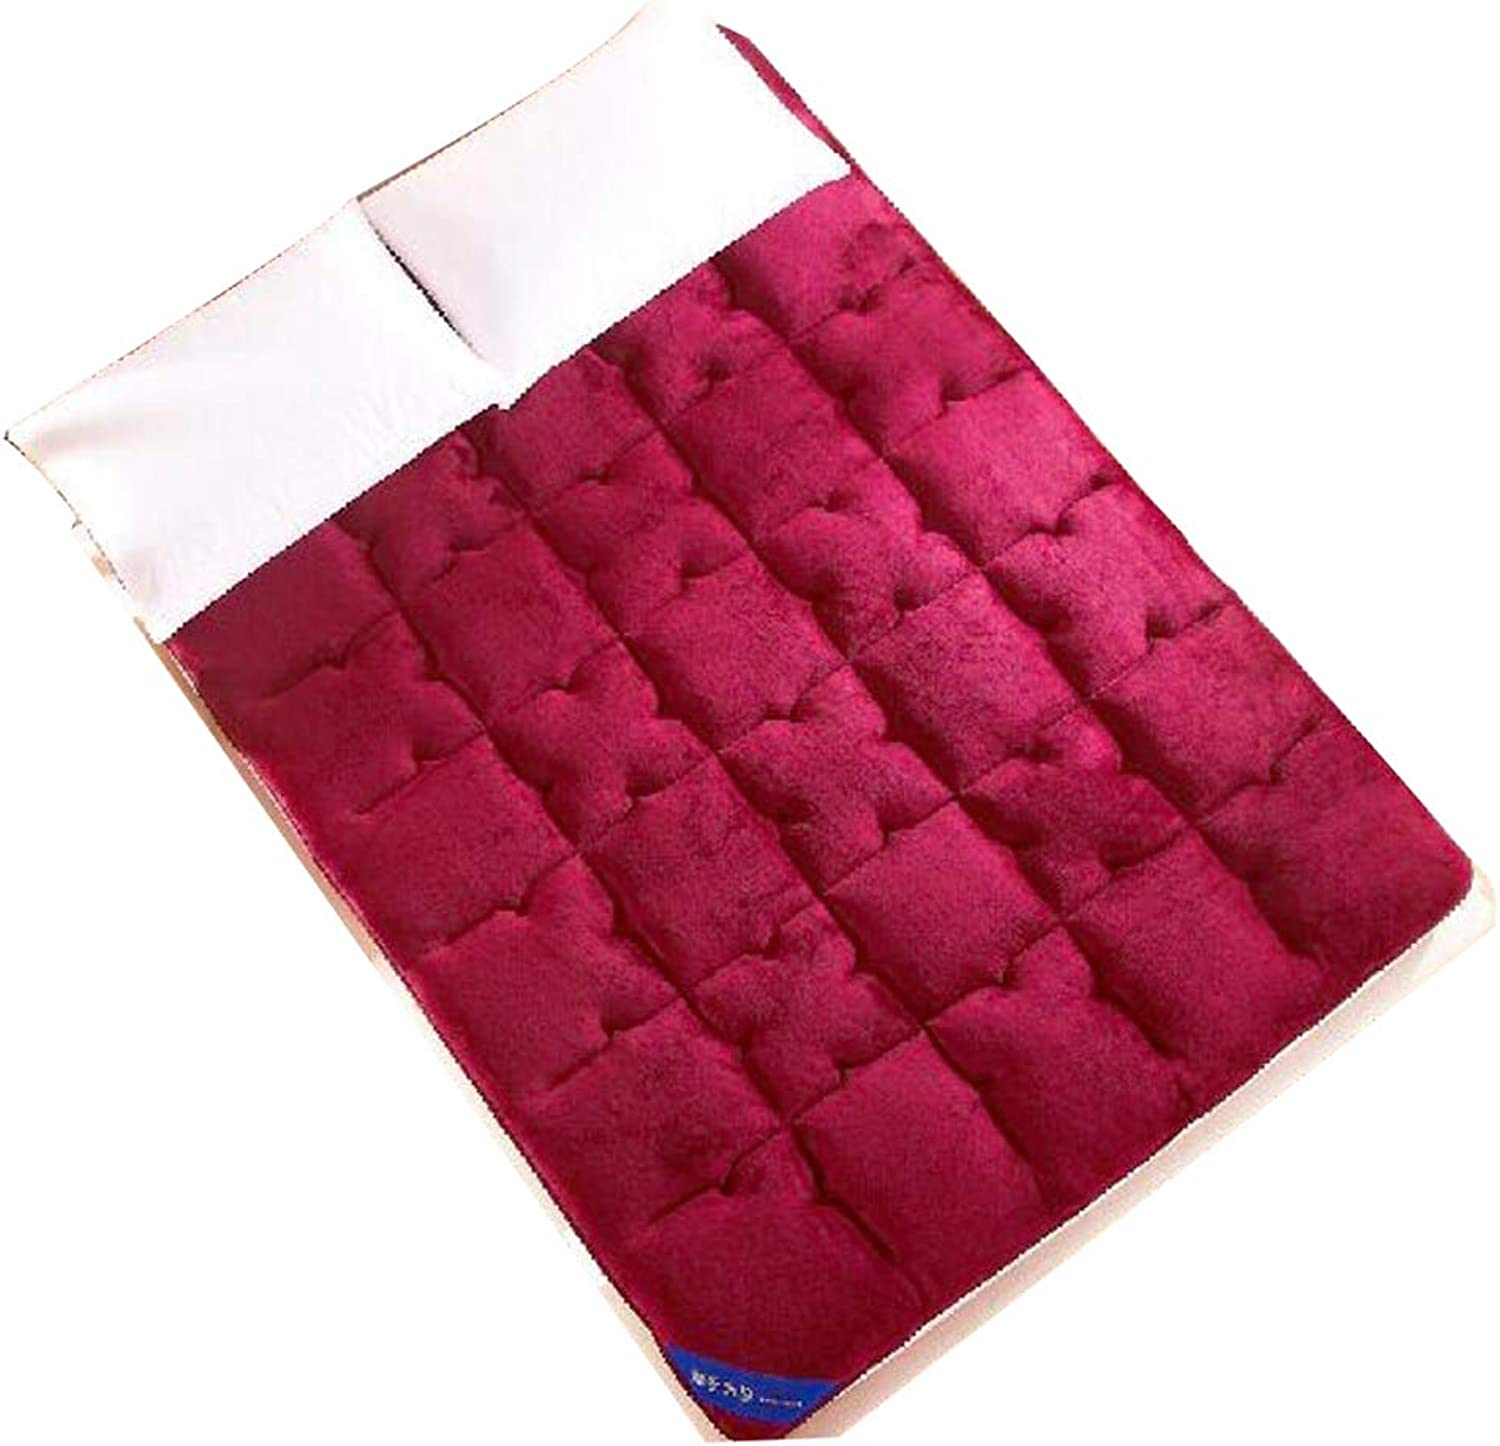 Flannel Portable Mattress pad, Quilting Non-Slip Tatami Mattress Ultra Soft Mattress Topper Floor futon mattresses-red 90x200cm(35x79inch)